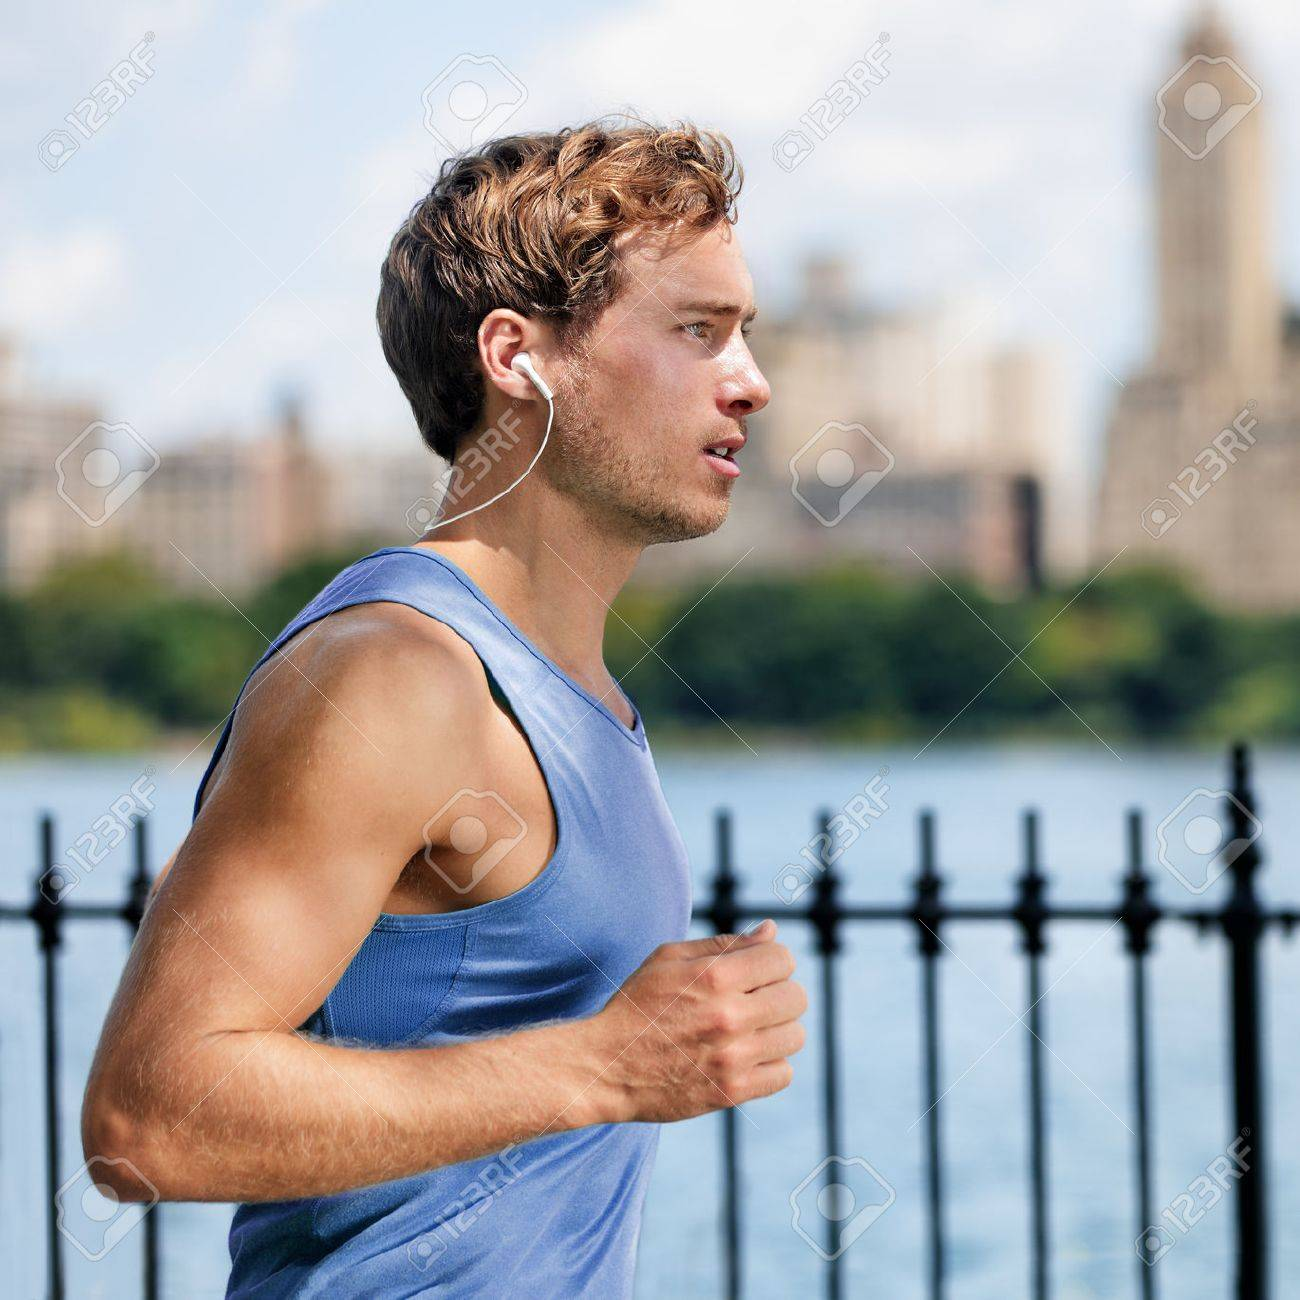 Urban young man running in city park listening to music with wireless bluetooth in-ear earphones living a healthy active lifestyle. Male runner blue top working out cardio exercise workout in summer. Stock Photo - 57342433